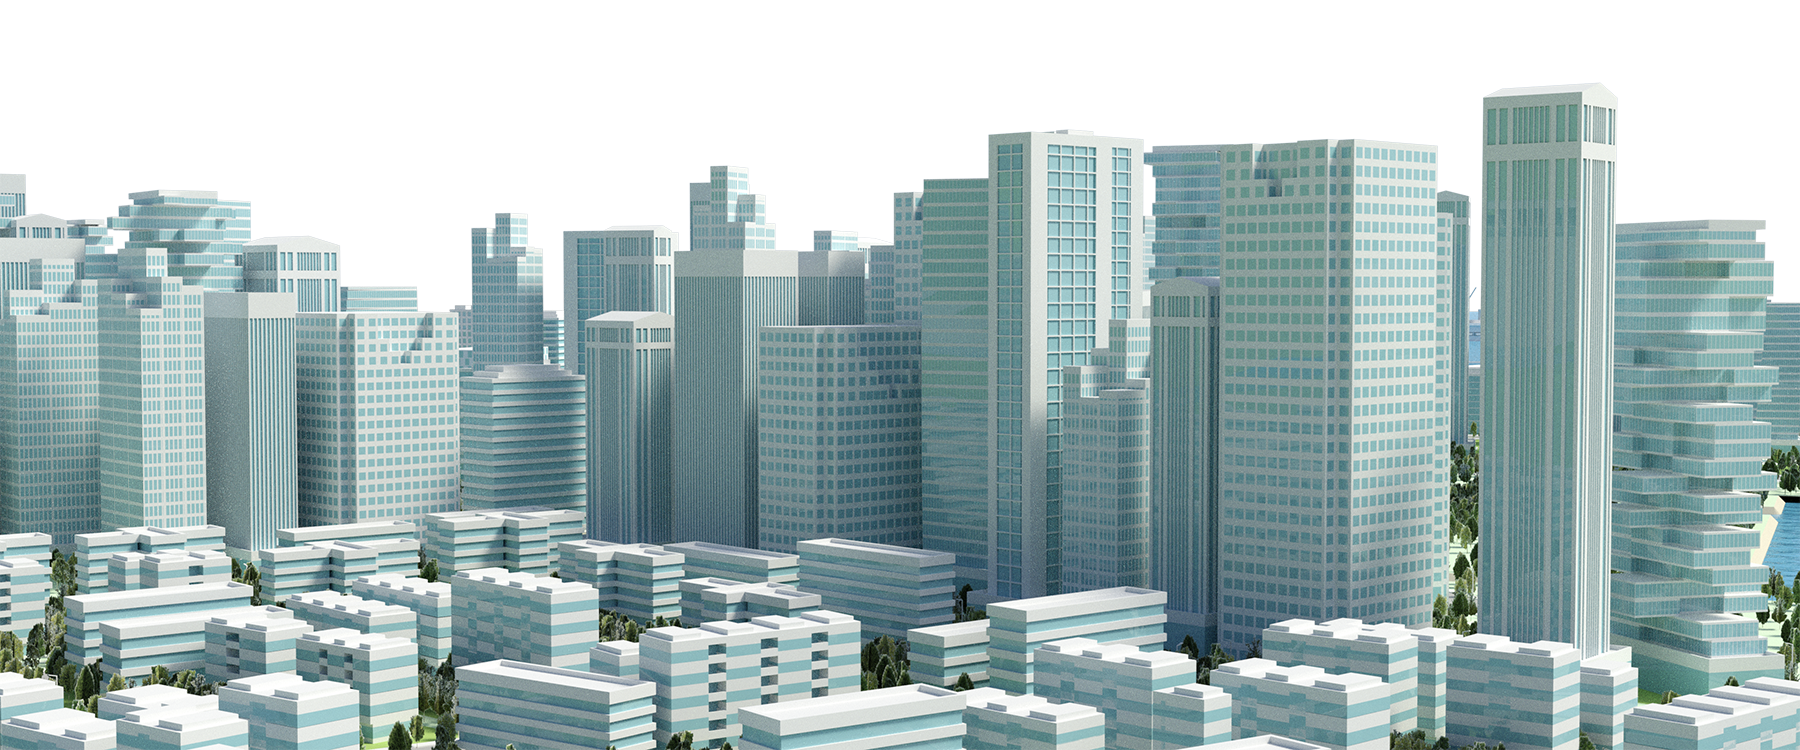 City buildings image purepng. Building png graphic library download